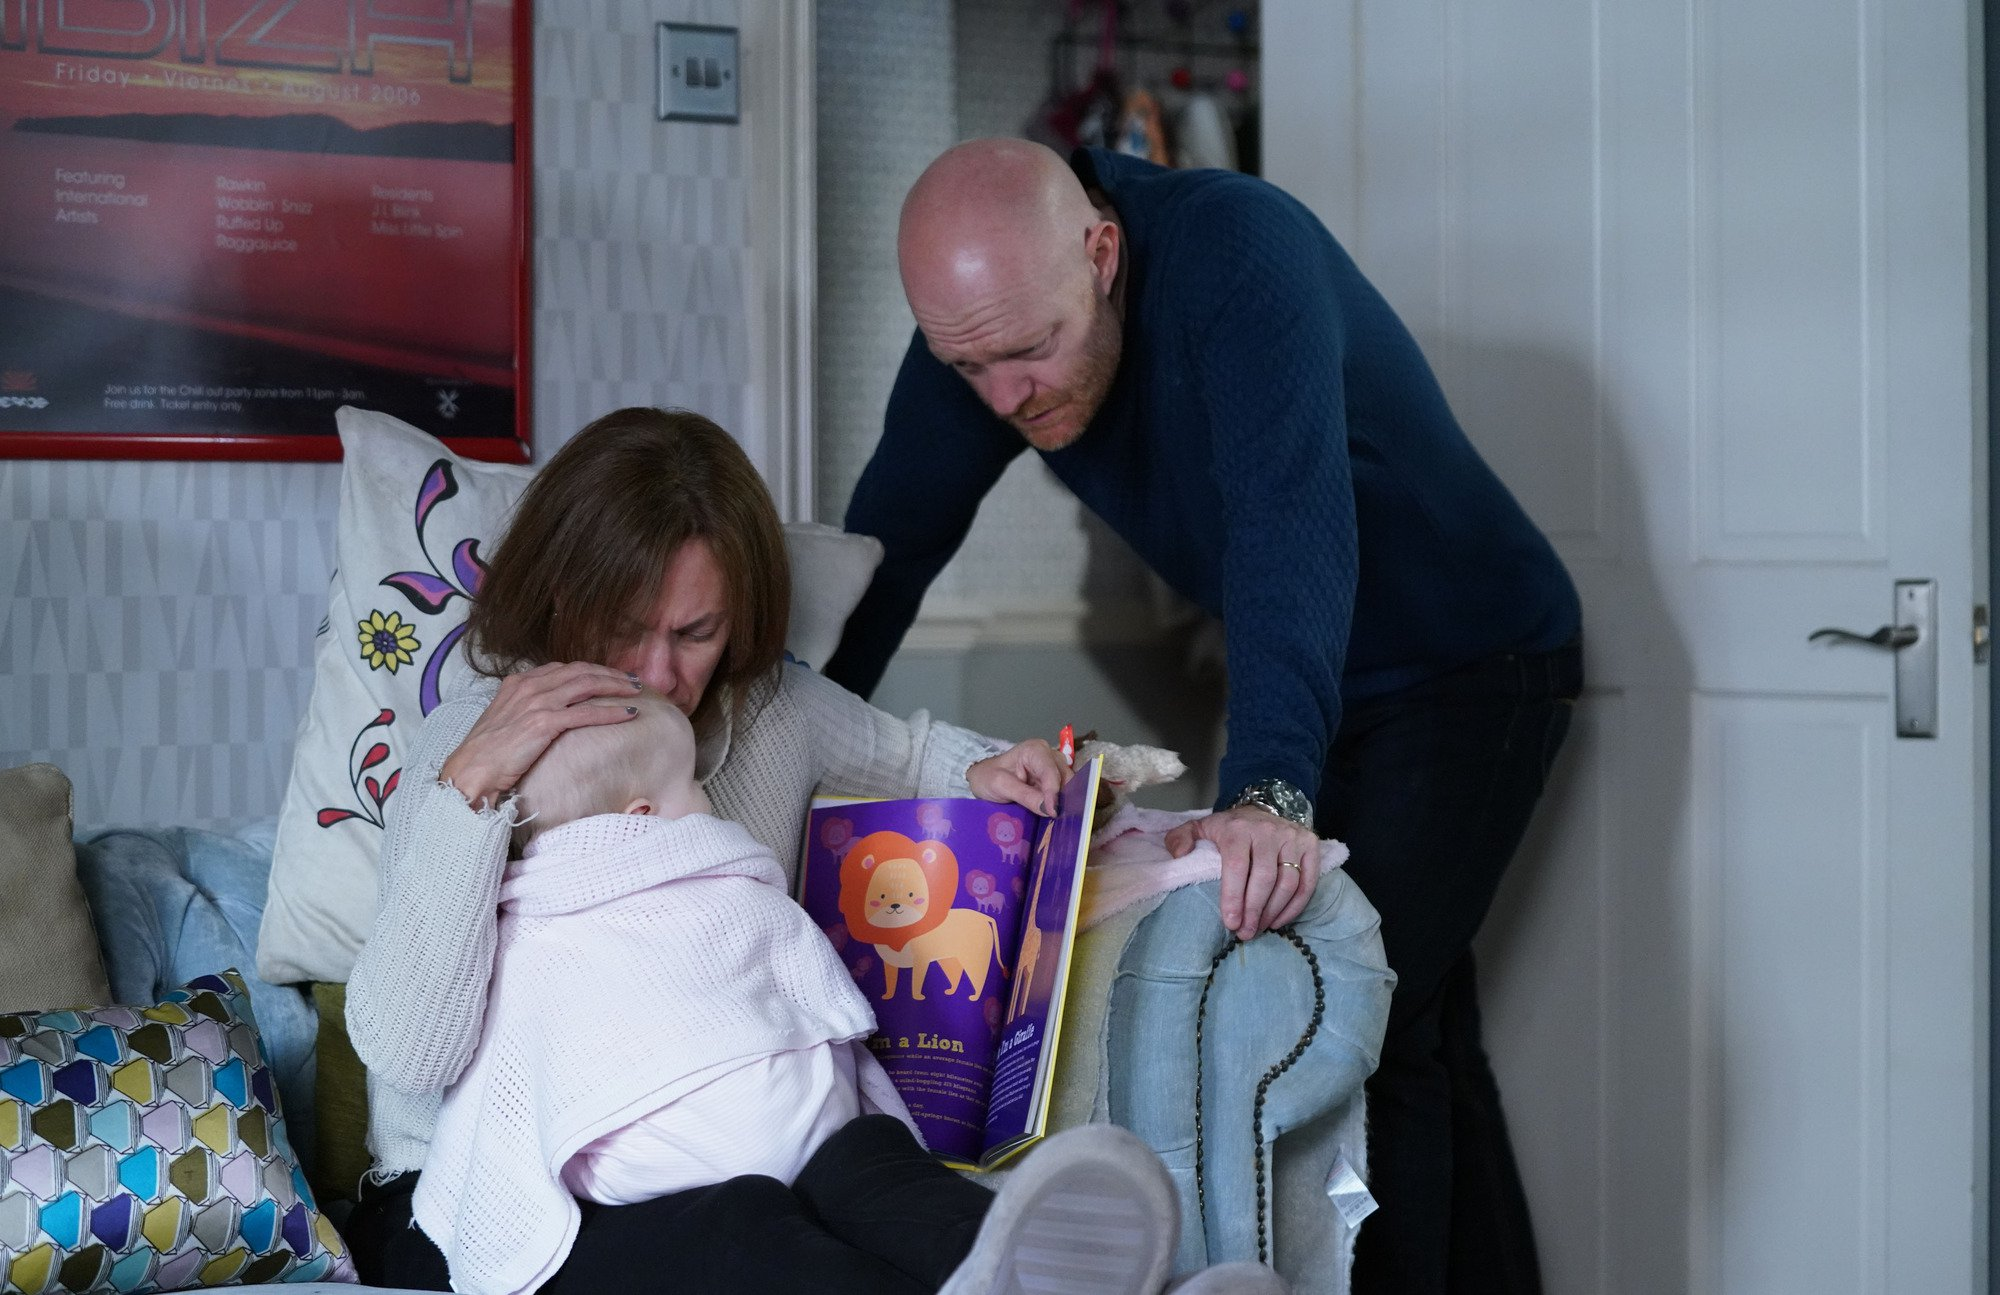 WARNING: Embargoed for publication until 00:00:01 on 08/01/2019 - Programme Name: EastEnders - January - March 2019 - TX: 15/01/2019 - Episode: EastEnders - January - March - 2019 - 5851 (No. 5851) - Picture Shows: *STRICTLY NOT FOR PUBLICATION UNTIL 00:01HRS TUESDAY 8th JANUARY 2019* Max is worried Rainie is sick. Rainie Branning (TANYA FRANKS), Baby Abi, Max Branning (JAKE WOOD) - (C) BBC - Photographer: Kieron McCarron